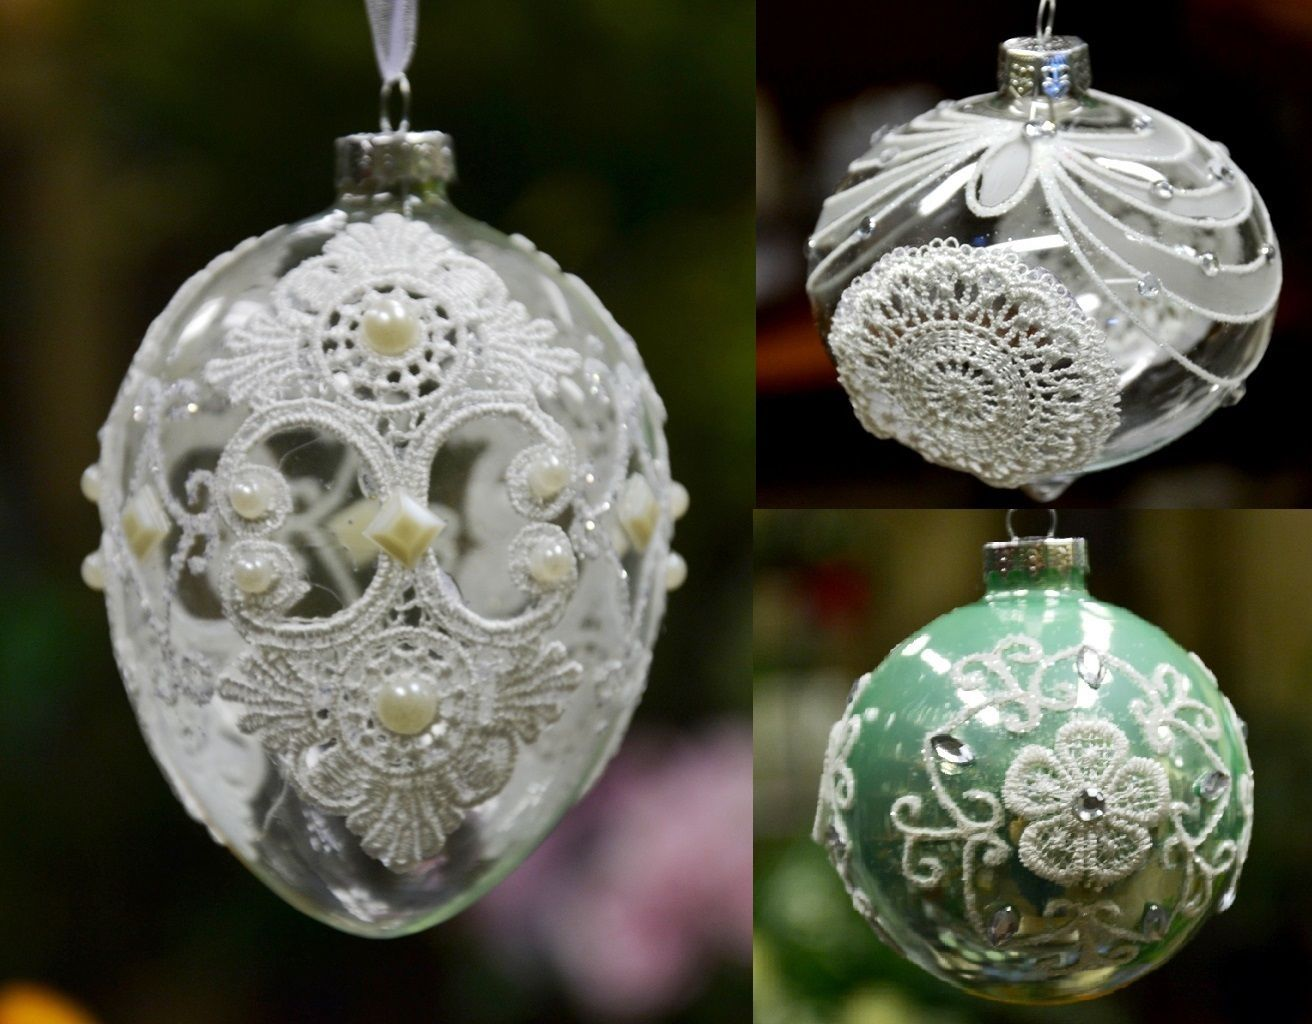 Christmas Tree Ornament Glass Ball With Laces, Bauble